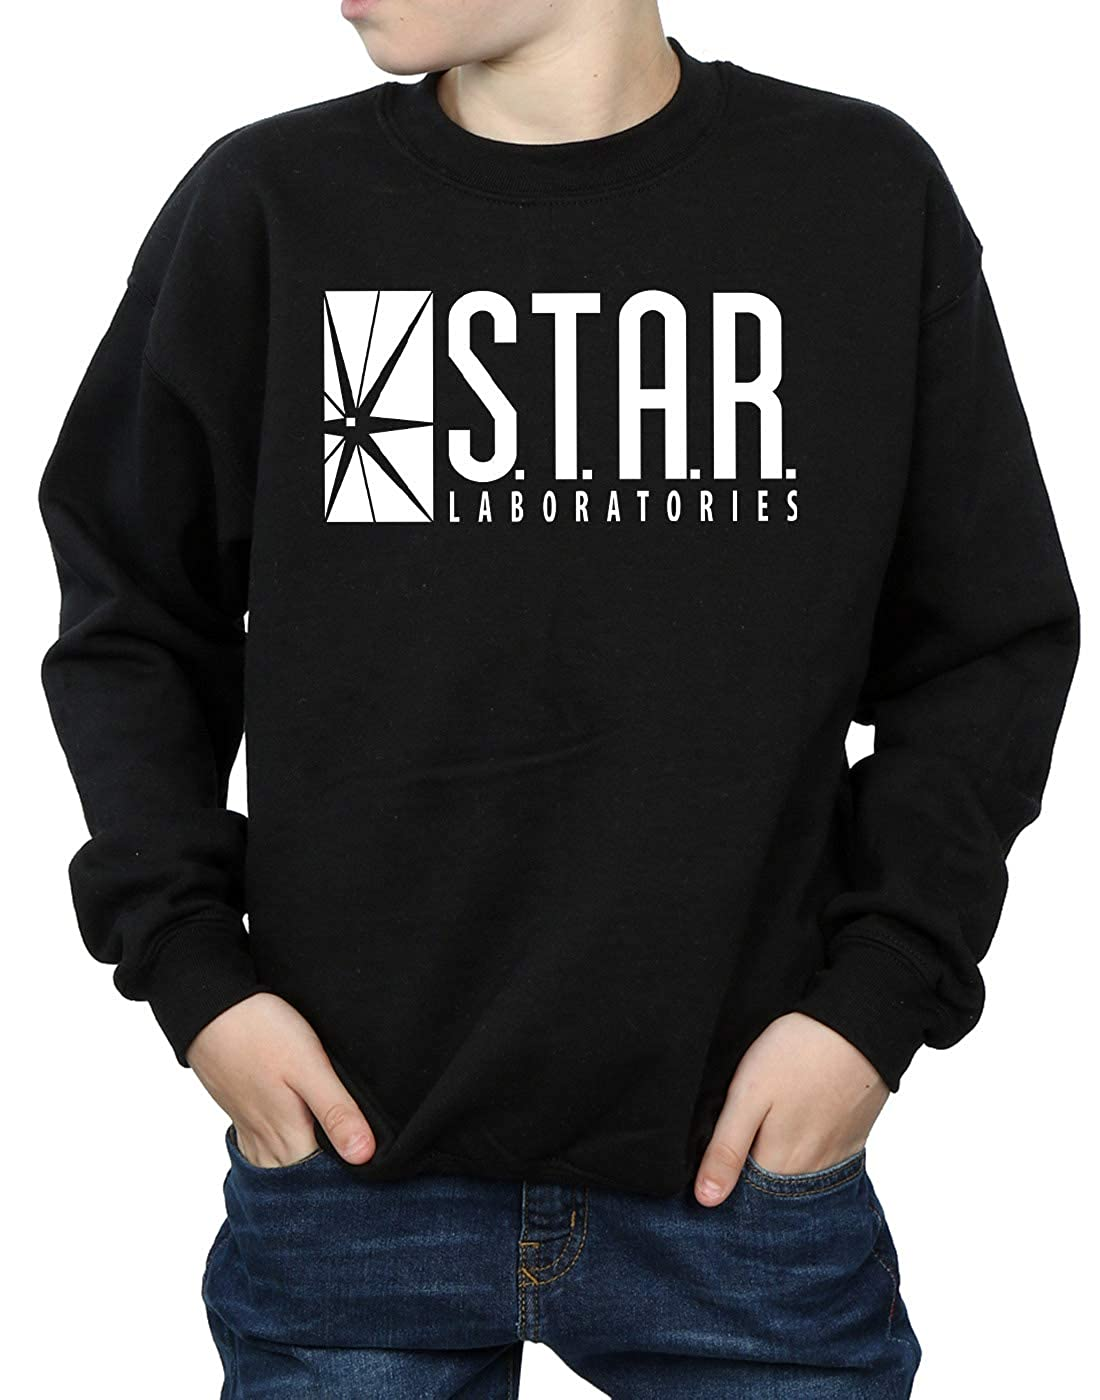 8cc6c33d69f7 Amazon.com  DC Comics Boys The Flash Star Labs Sweatshirt  Clothing